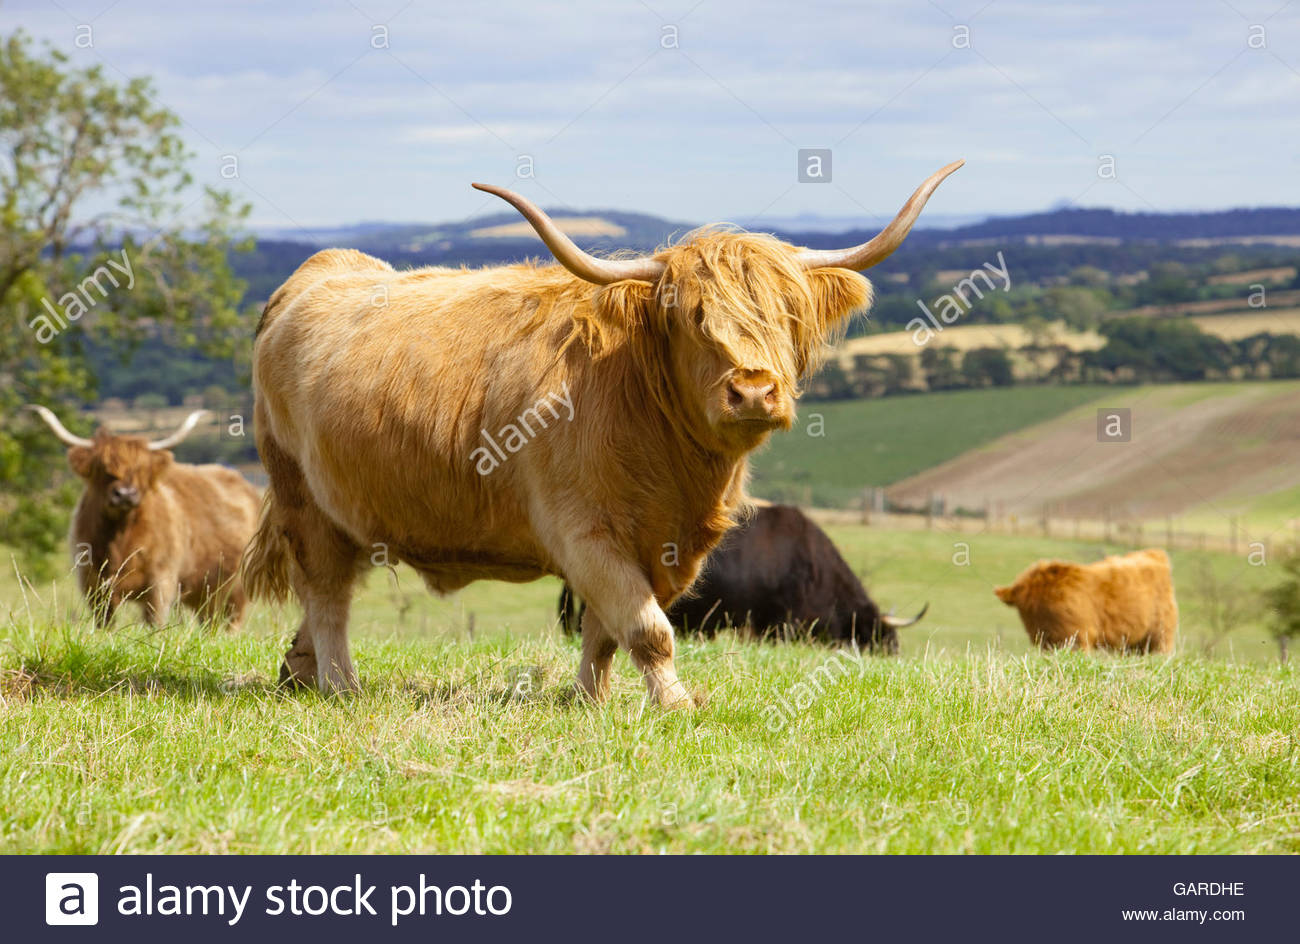 A herd of Highland cattle - Stock Image